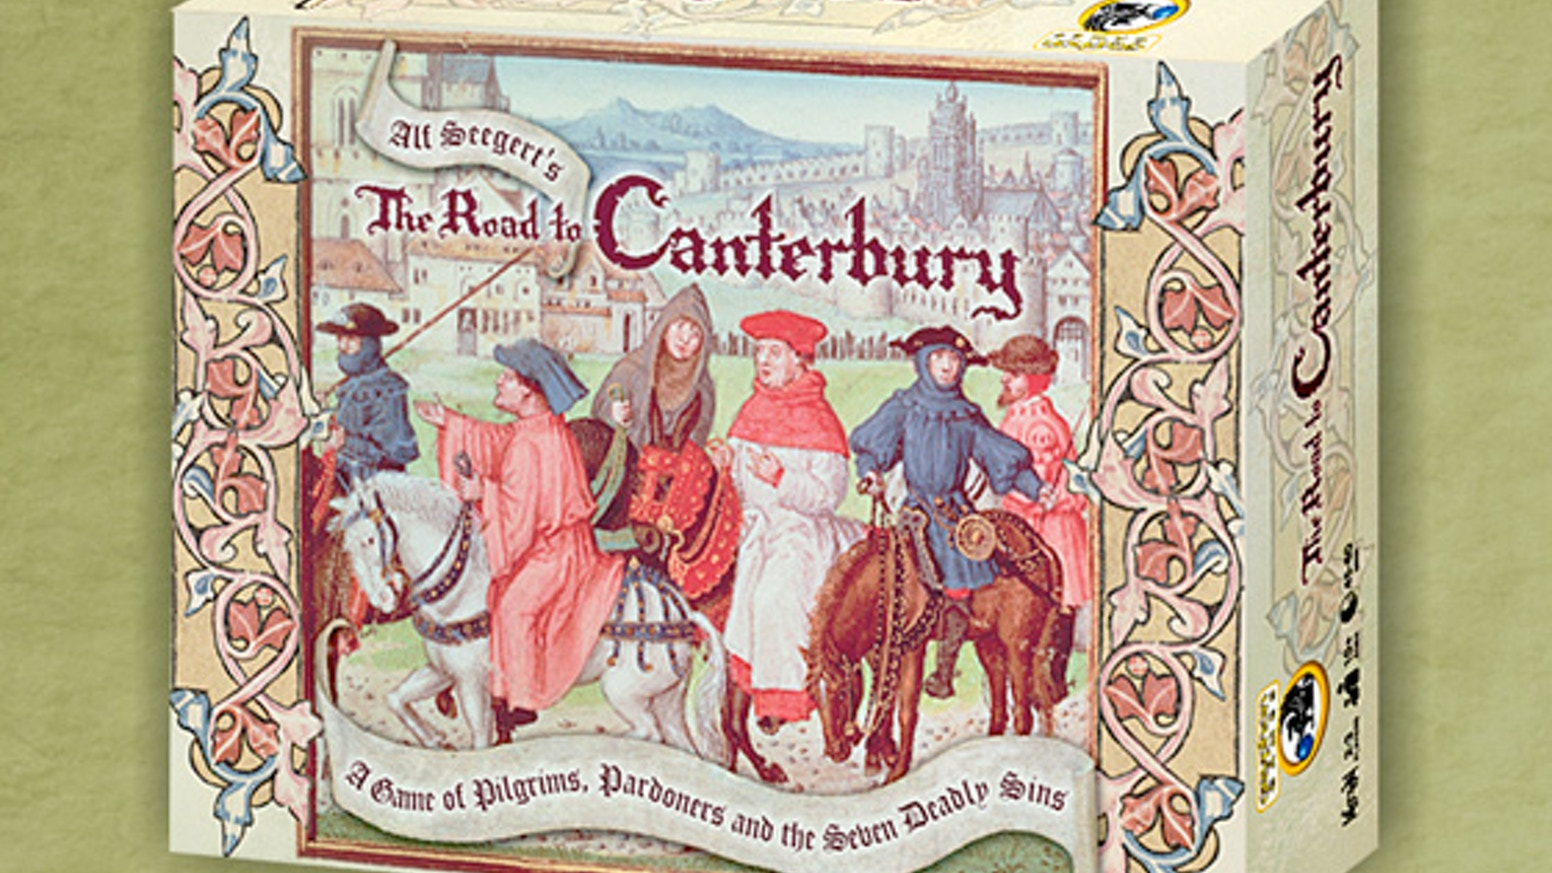 Join the Pardoner's Guild & help Gryphon Games launch the sin-filled delightful game, The Road to Canterbury, designed by Alf Seegert.